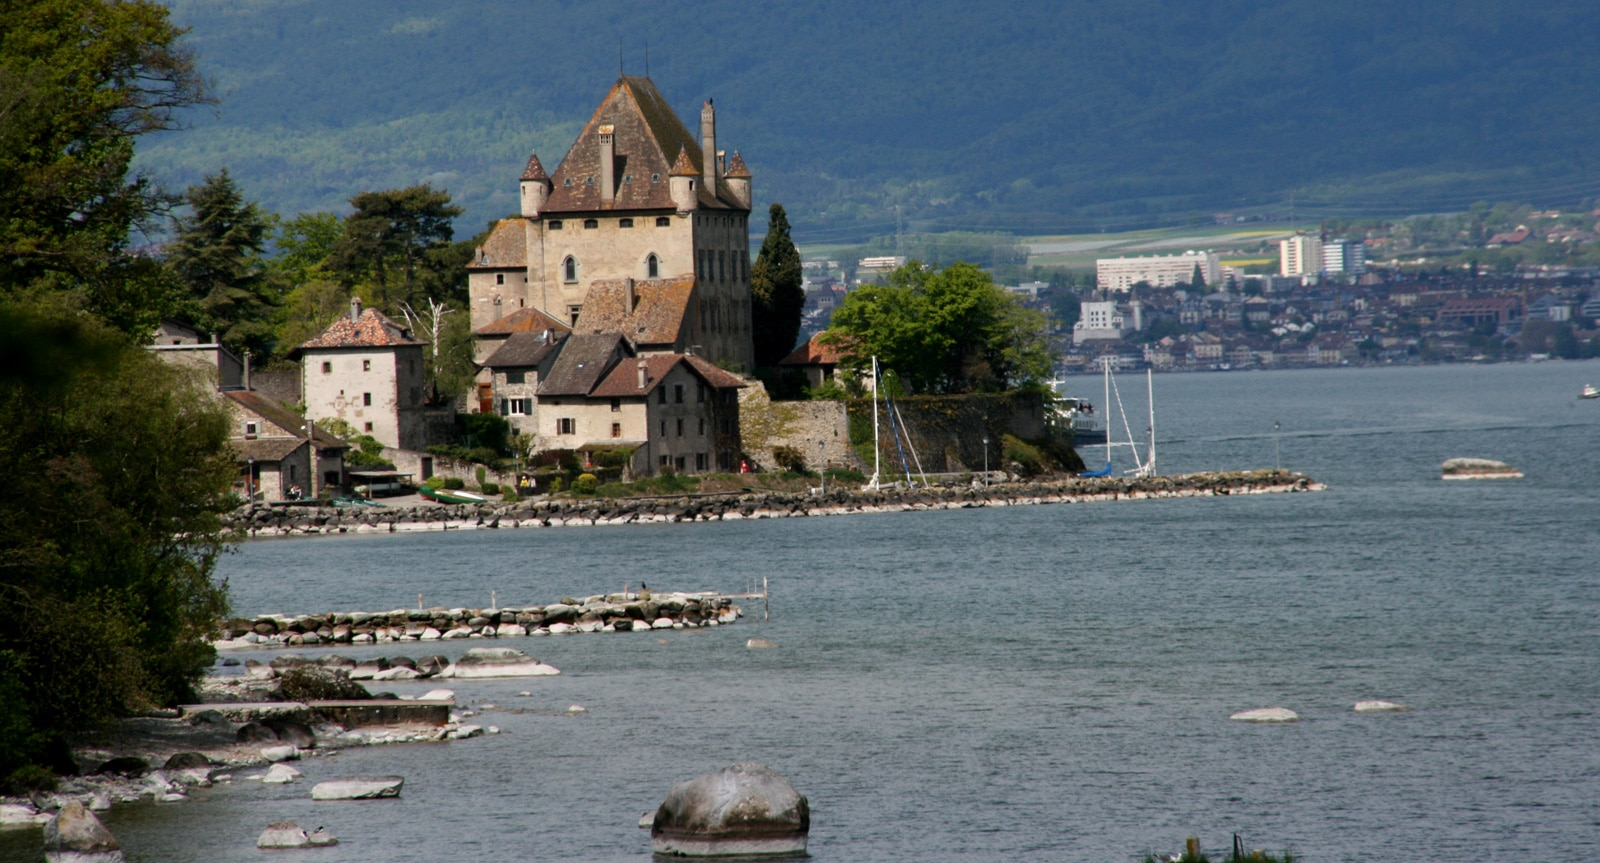 Map Of Yvoire France.Yvoire Beautiful Medieval Village Lake Geneva France